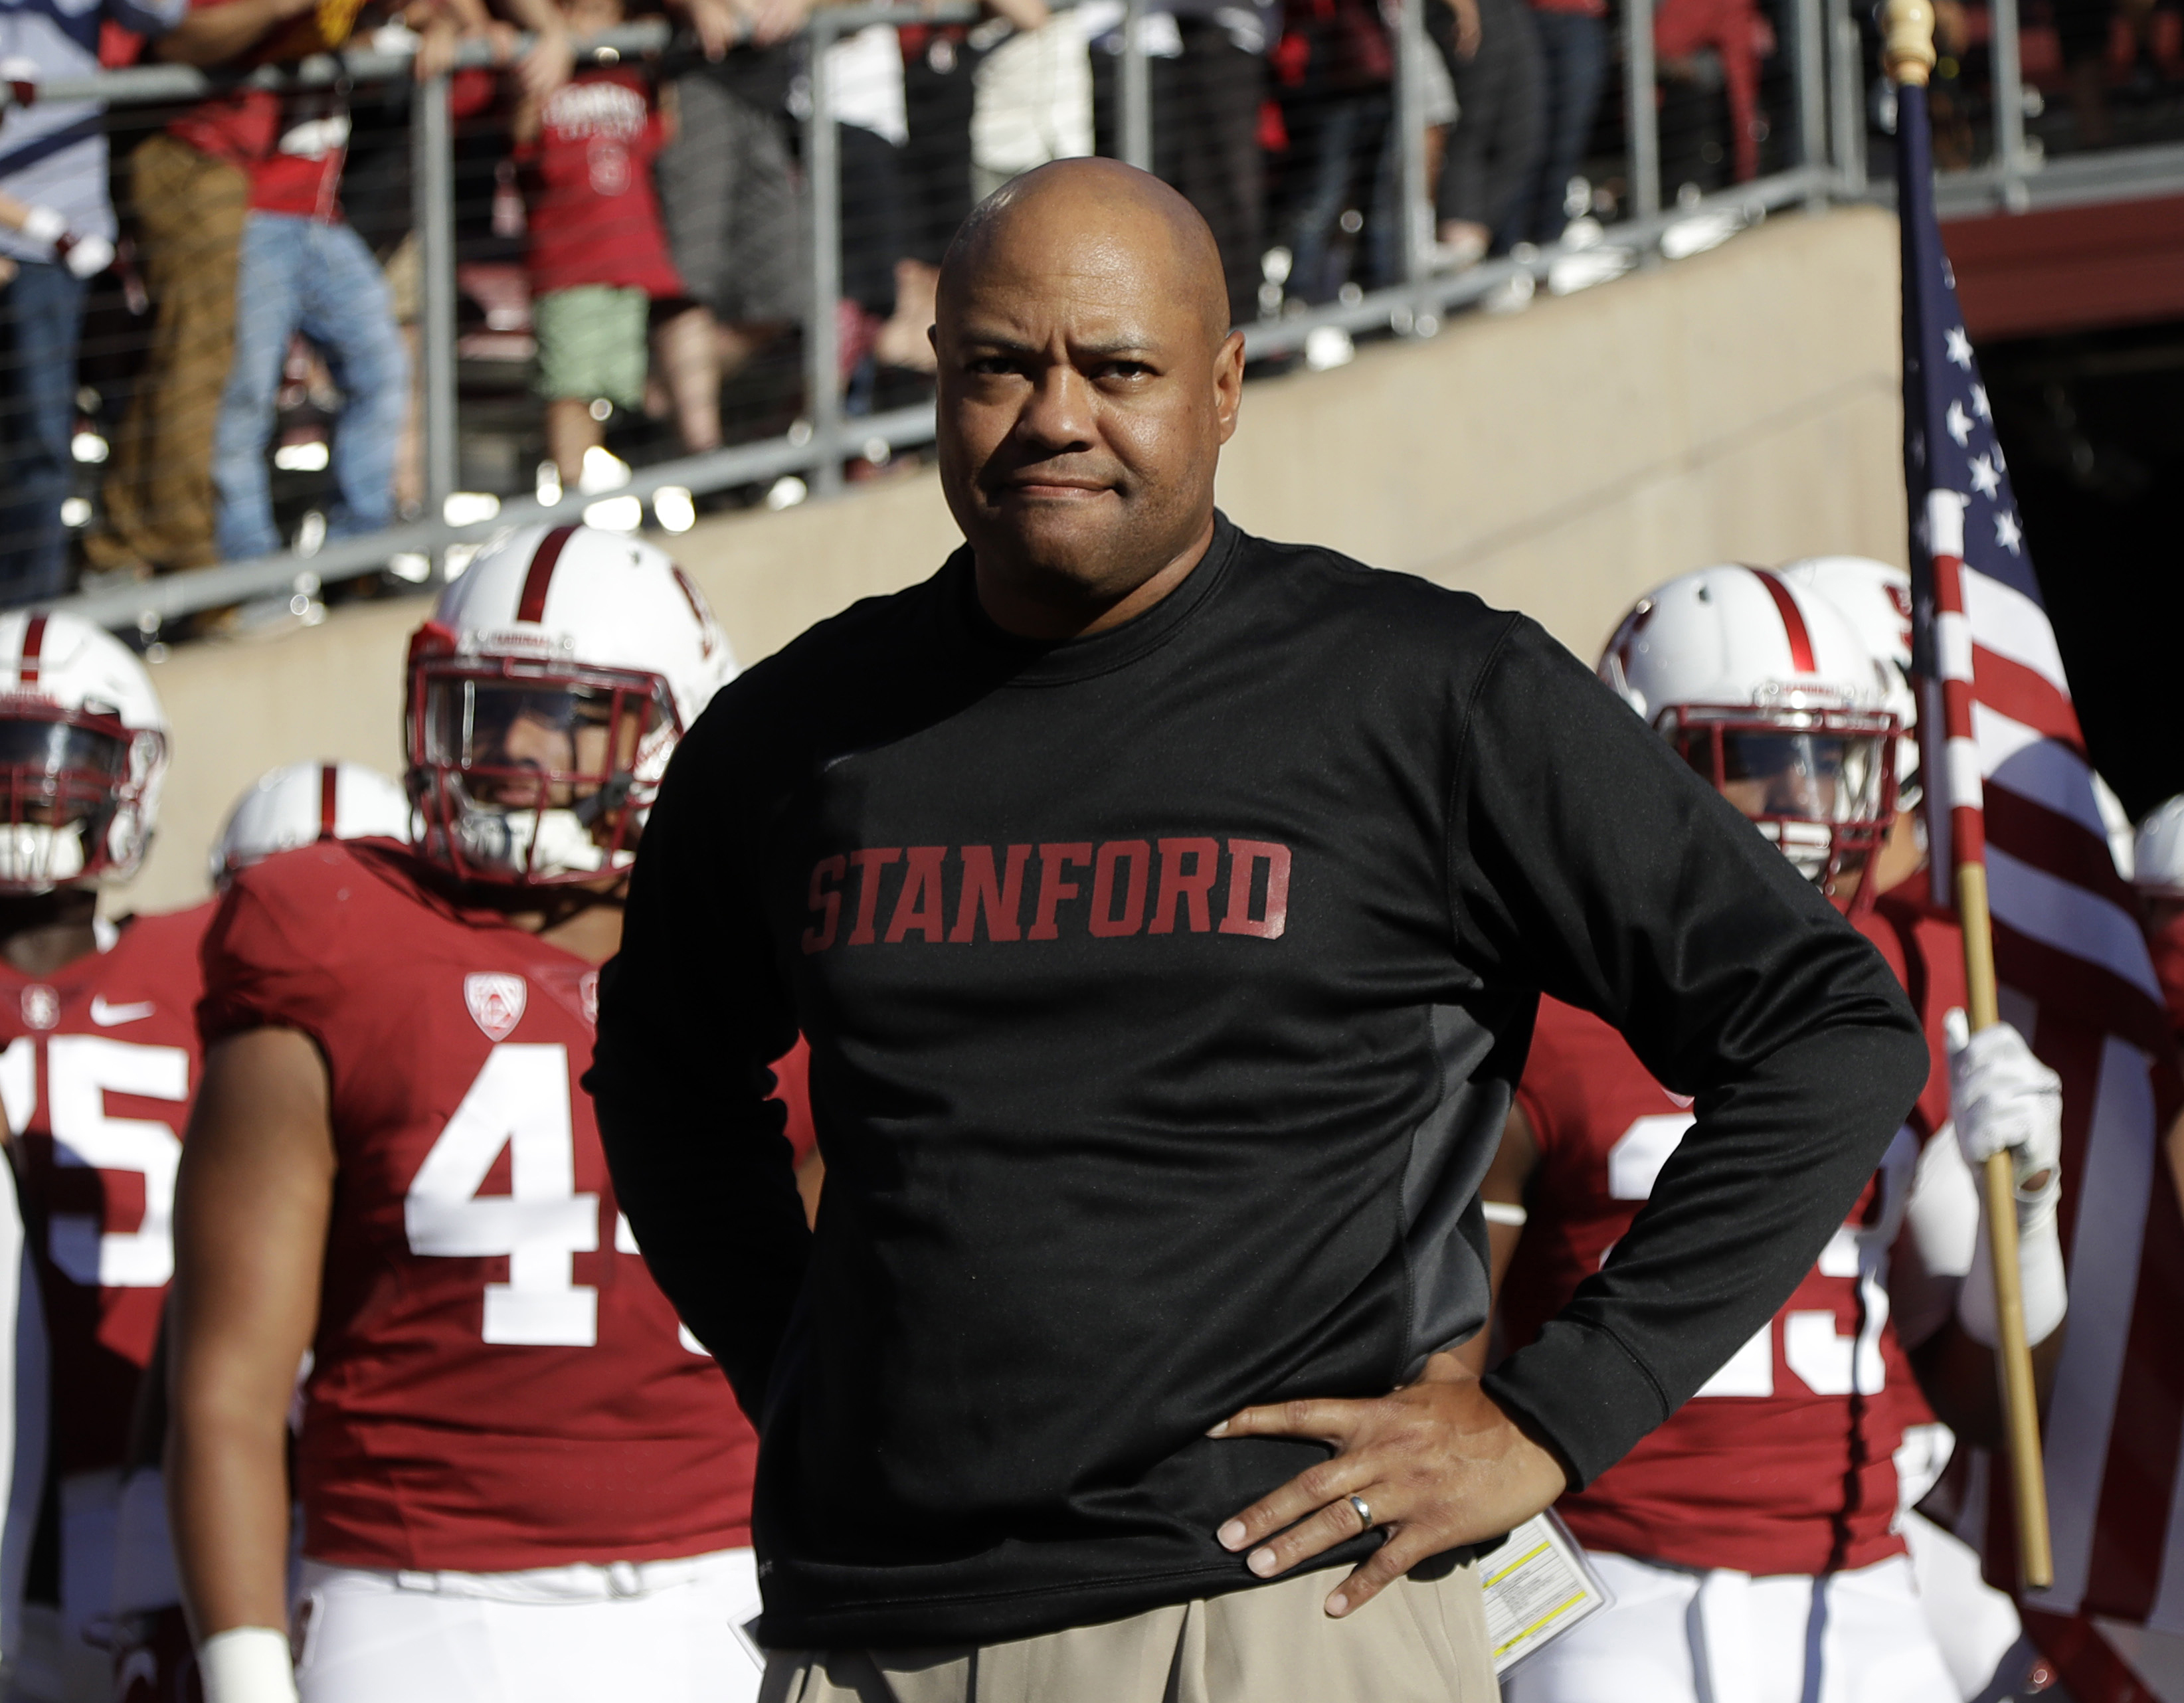 FILE - In this Sept. 17, 2016, file photo, Stanford head coach David Shaw prepares to enter the field with his team before an NCAA college football game against Southern California, in Stanford, Calif. Stanford vs. Notre Dame looked like a big game before